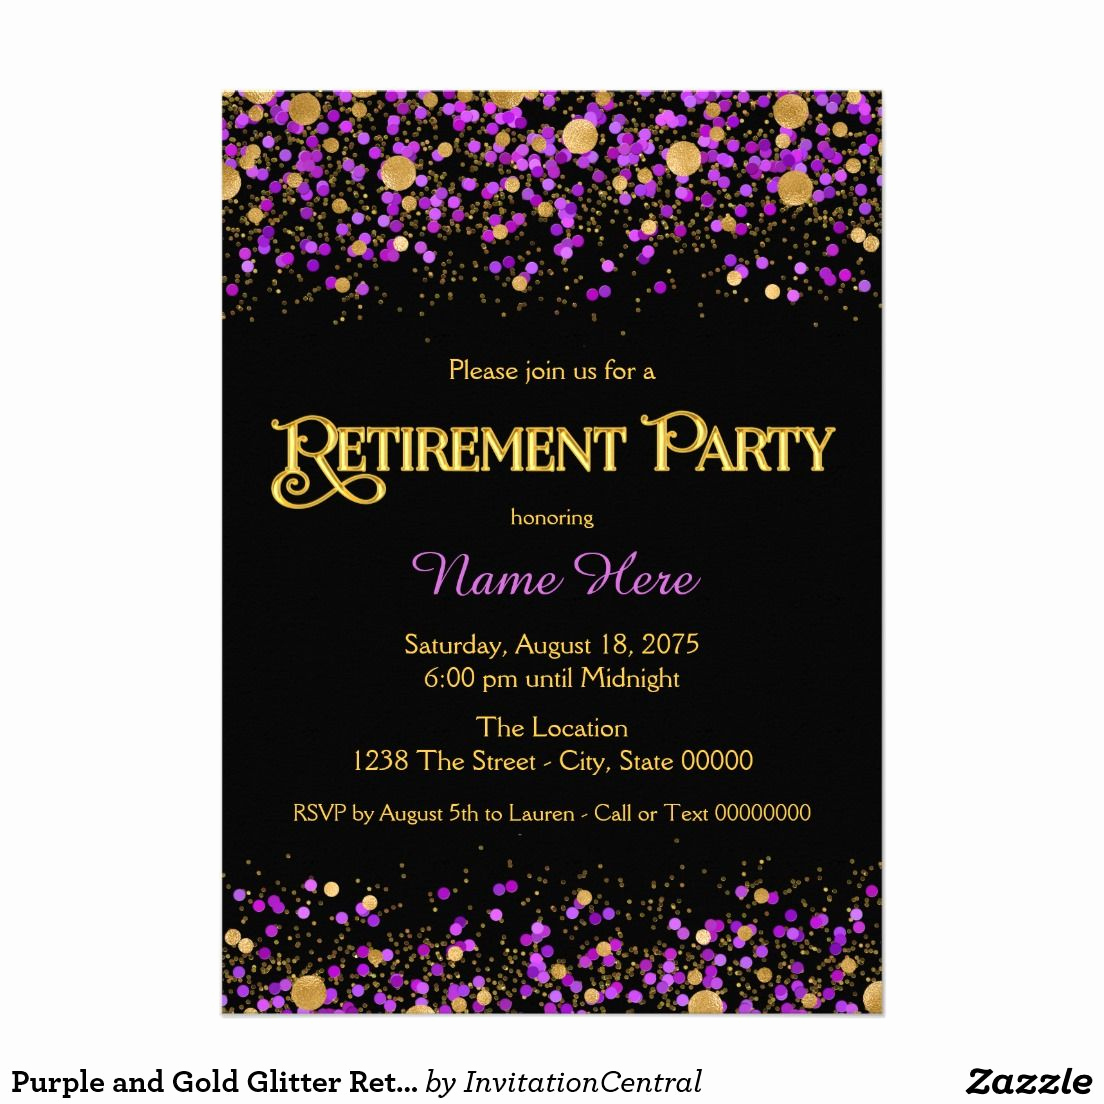 Retirement Party Invitation Ideas New Purple and Gold Glitter Retirement Party Card